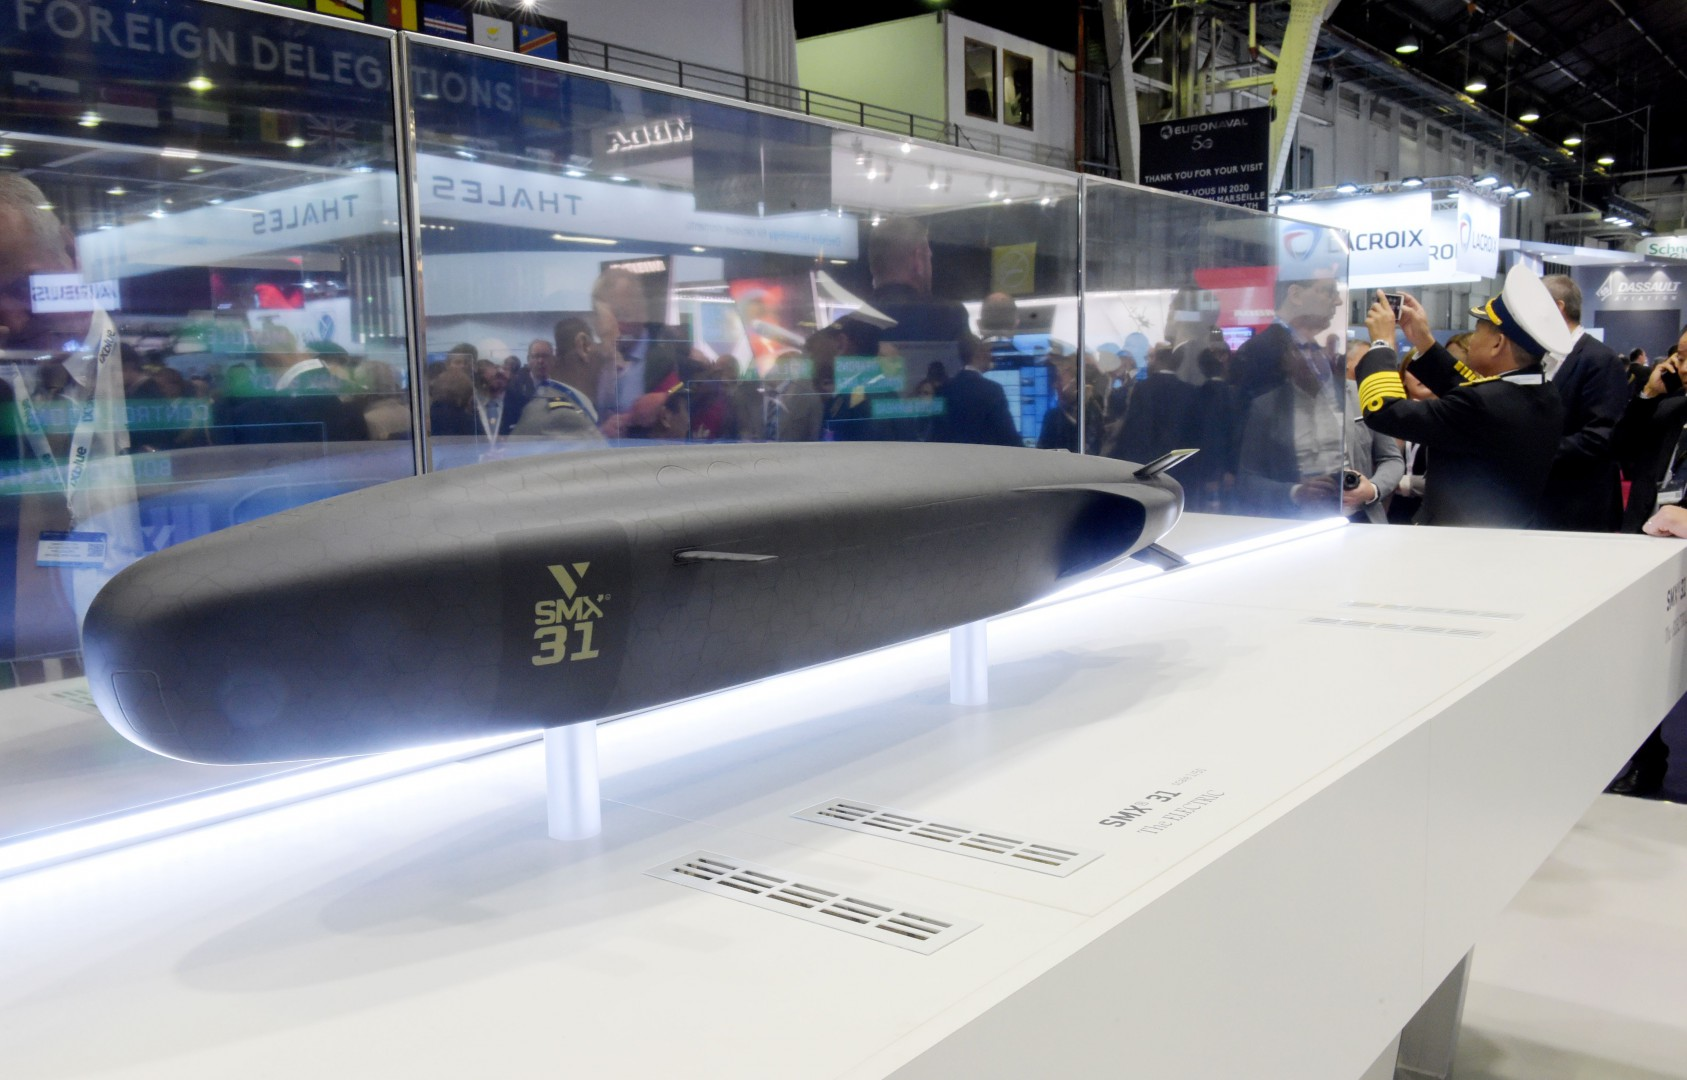 A picture taken at the Euronaval 2018, naval defence equipment fair, in Le Bourget, near Paris on October 23, 2018 shows a model of Naval Group's concept SMX 31 submarine. (Photo by ERIC PIERMONT / AFP)